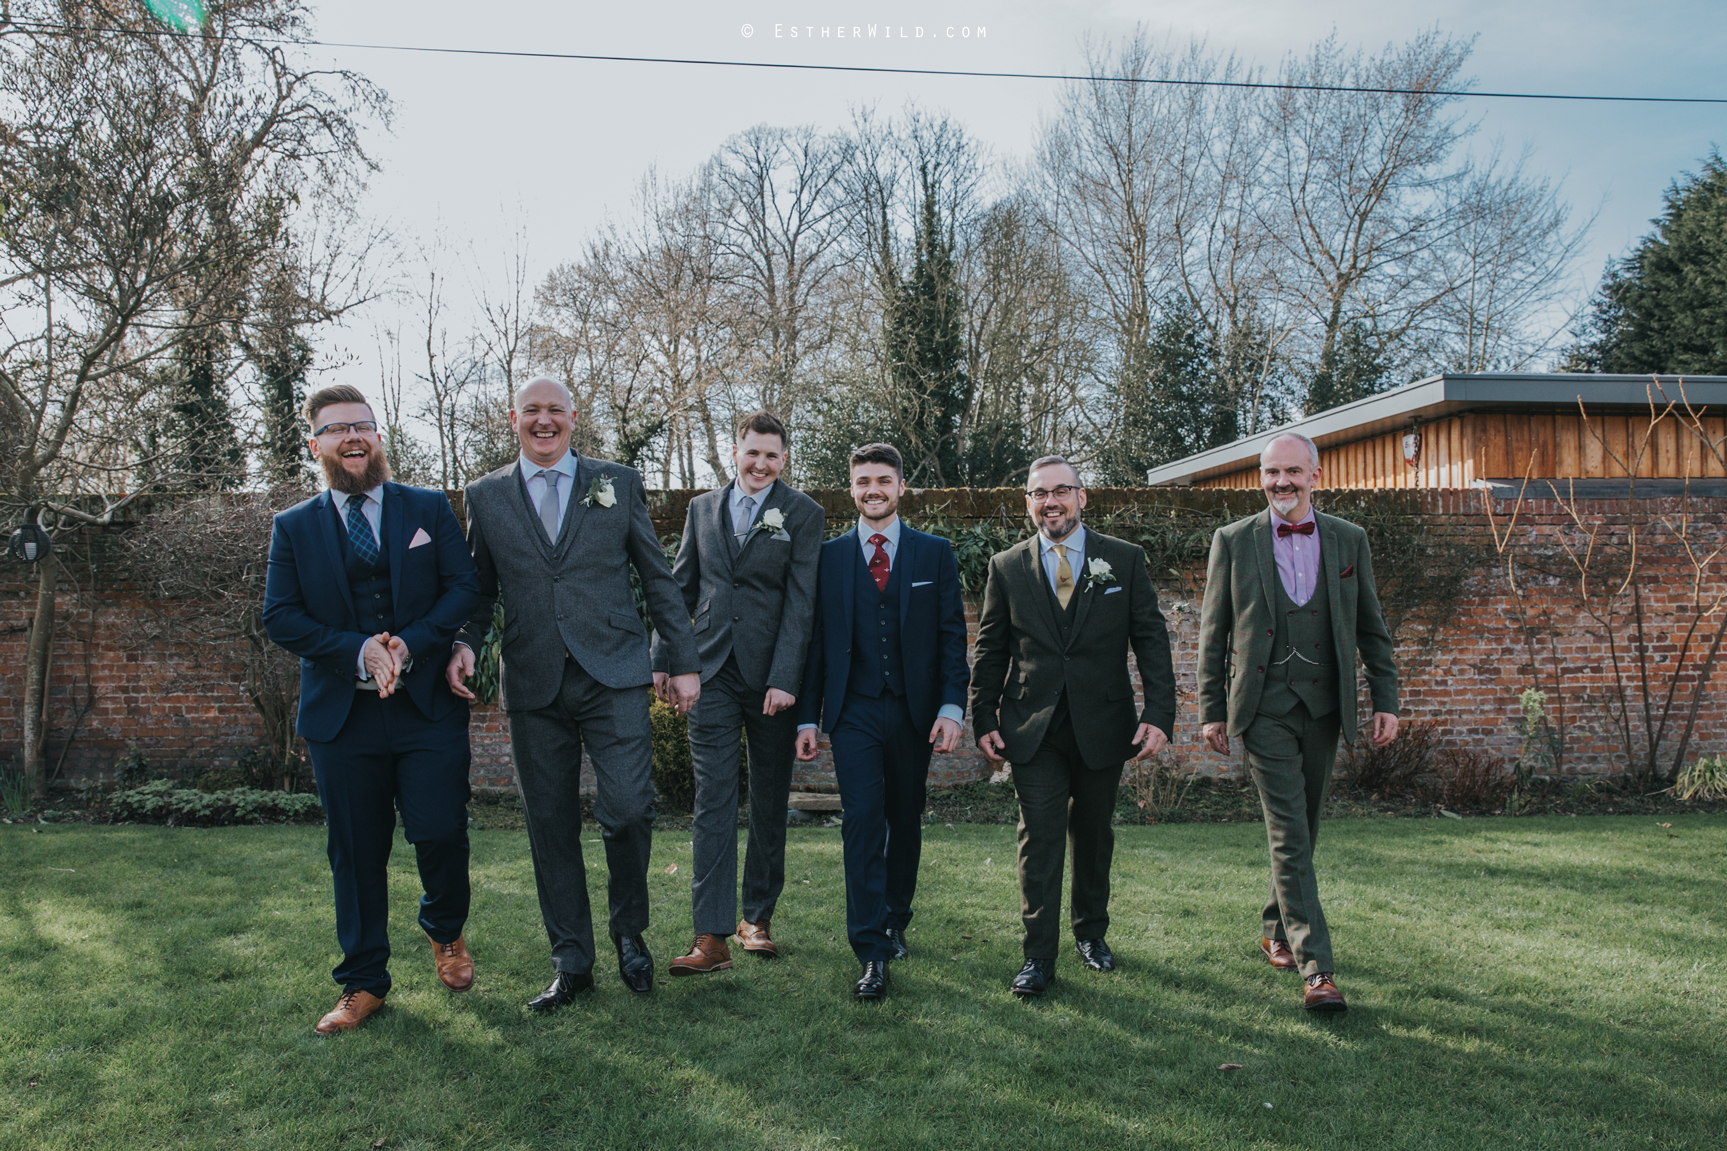 Norfolk_Mead_Hotel_Norwich_Wedding_Copyright_Esther_Wild_Photographer_IMG_2258.jpg